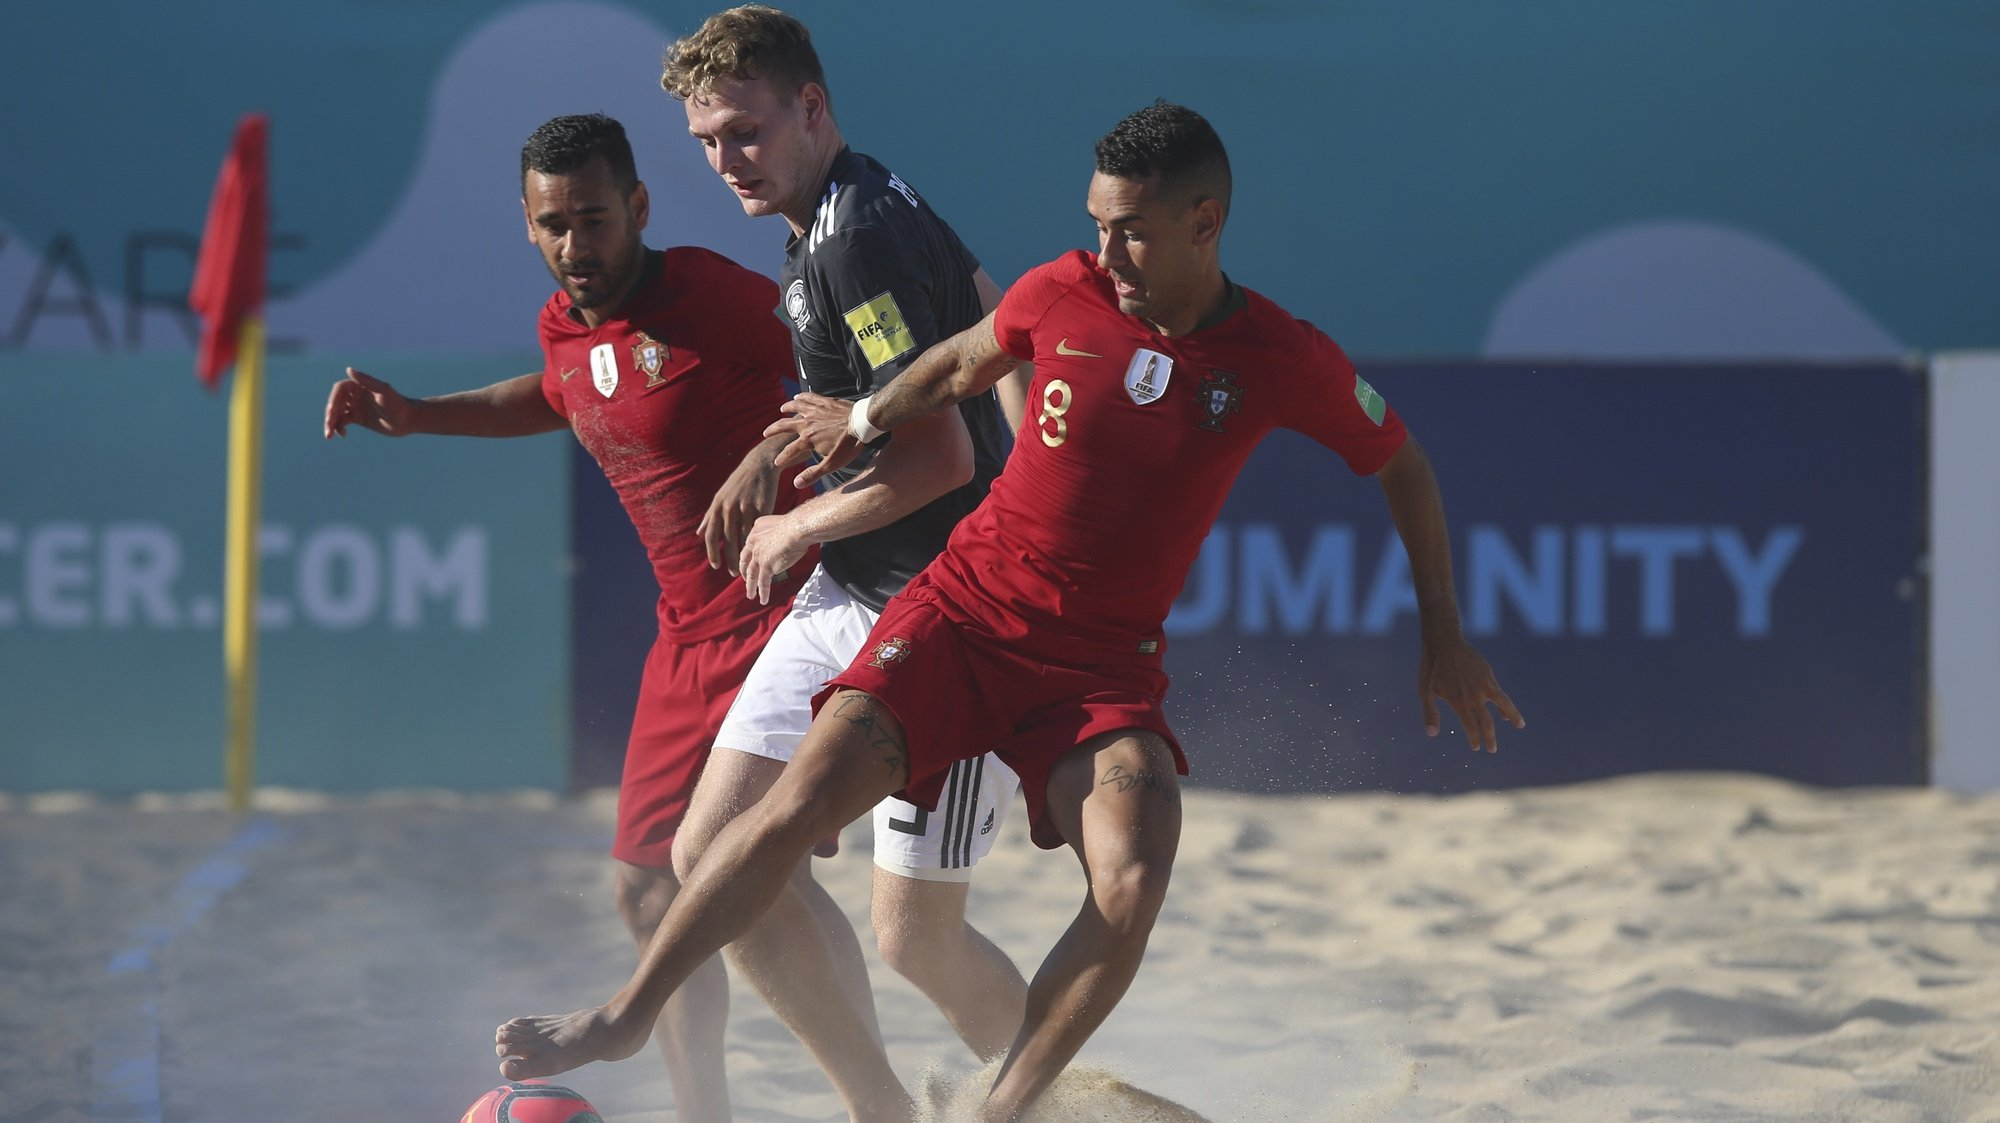 The players of the Portuguese national team, Leo Martins (L) and Be Martins (R), fights for the ball with Paul Baaske of the German national team during the Superfinal of the European Beach Soccer League held at Nazare, Portugal, 3 September 2020. PAULO CUNHA/LUSA